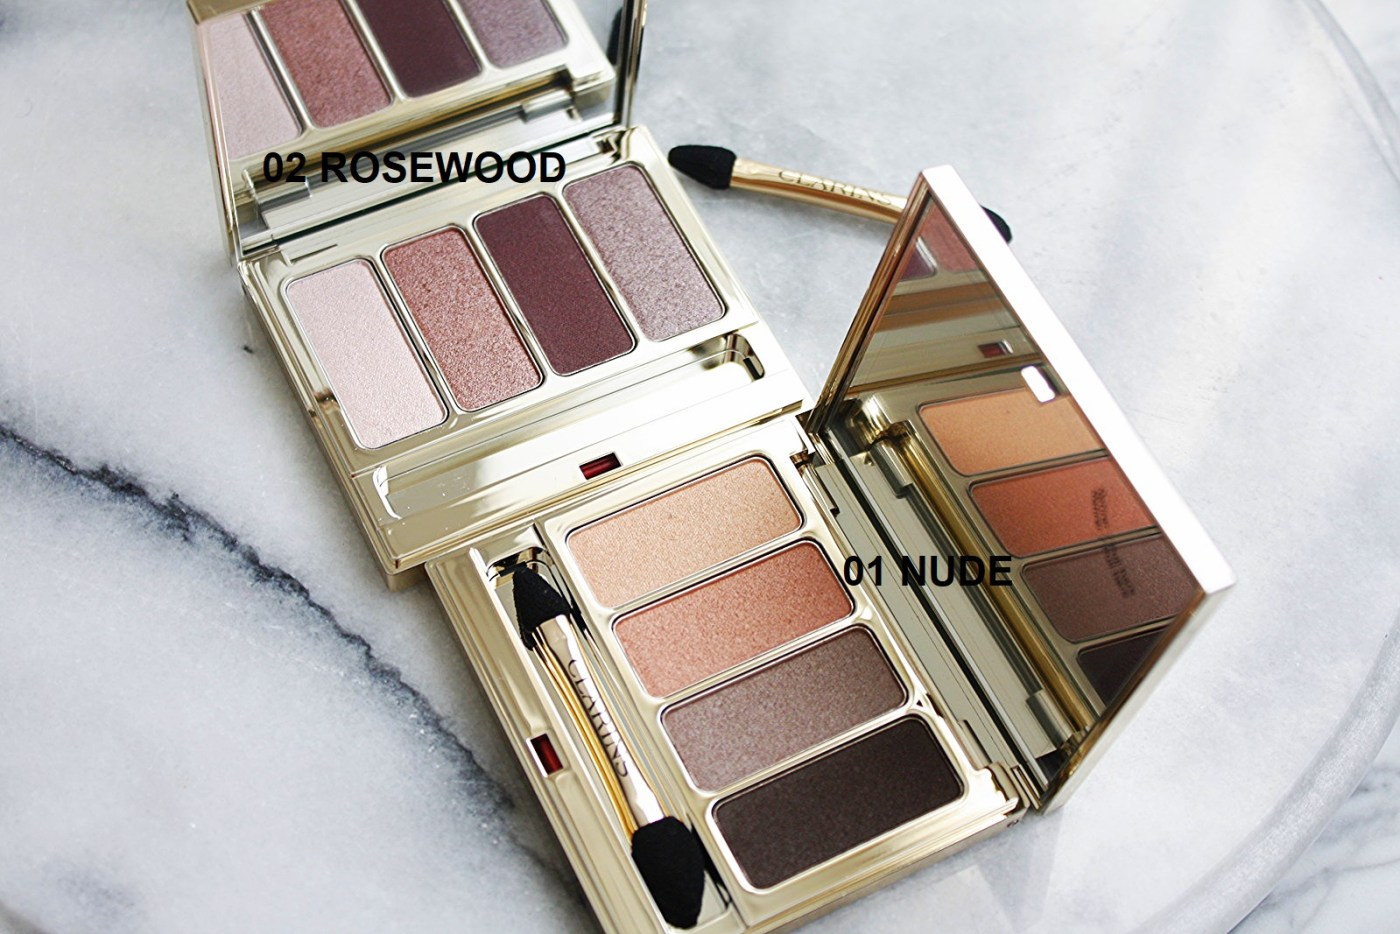 CLARINS 4-COLOUR EYESHADOW PALETTE – NUDE & ROSEWOOD